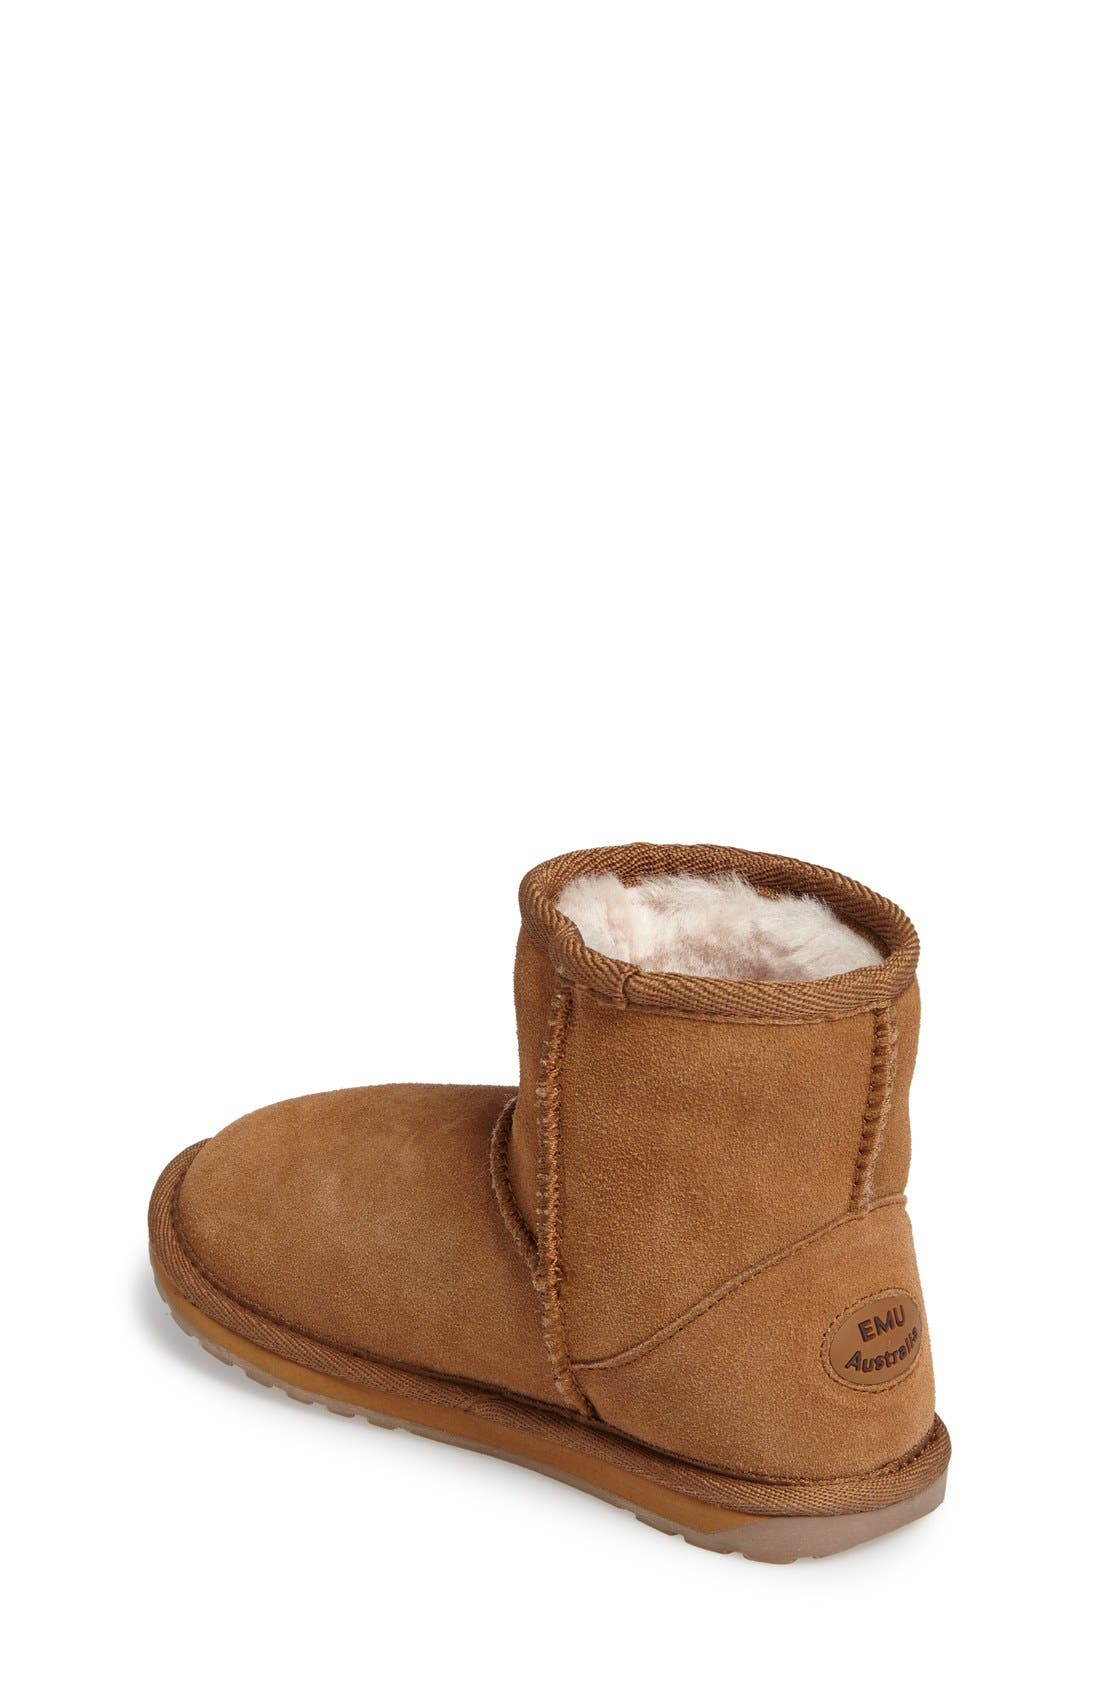 Wallaby Boot,                             Alternate thumbnail 2, color,                             Chestnut